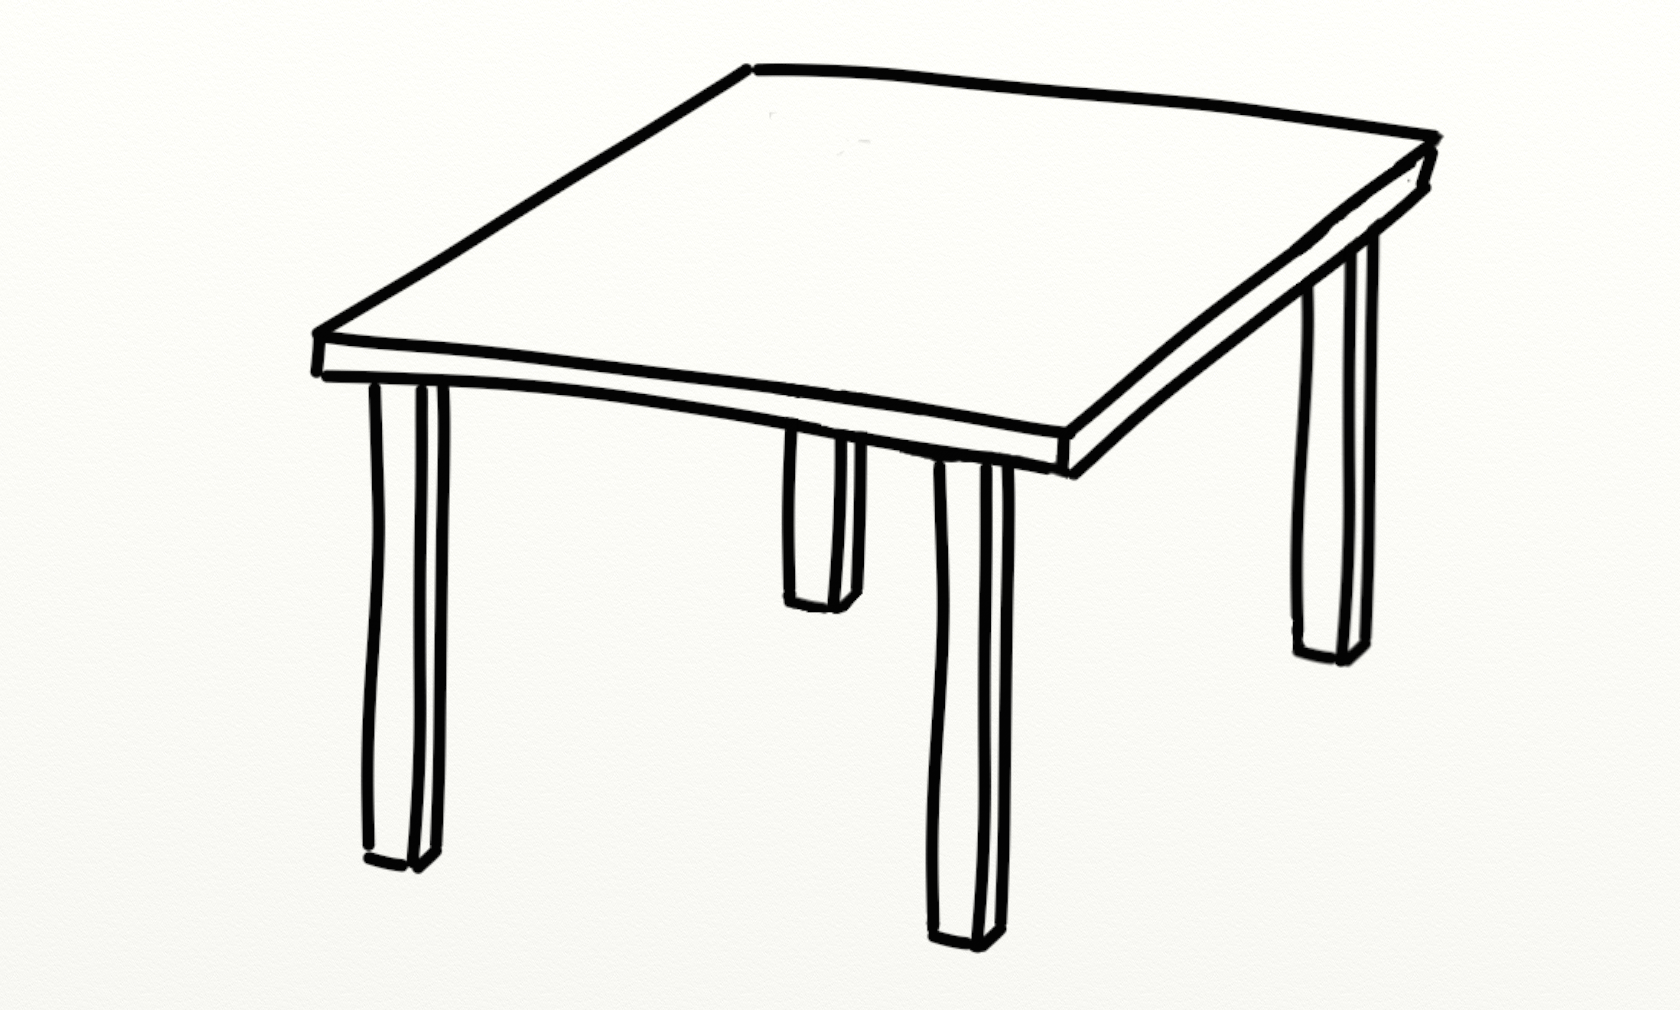 13 Table Outline Free Cliparts That You Can Download To You Computer